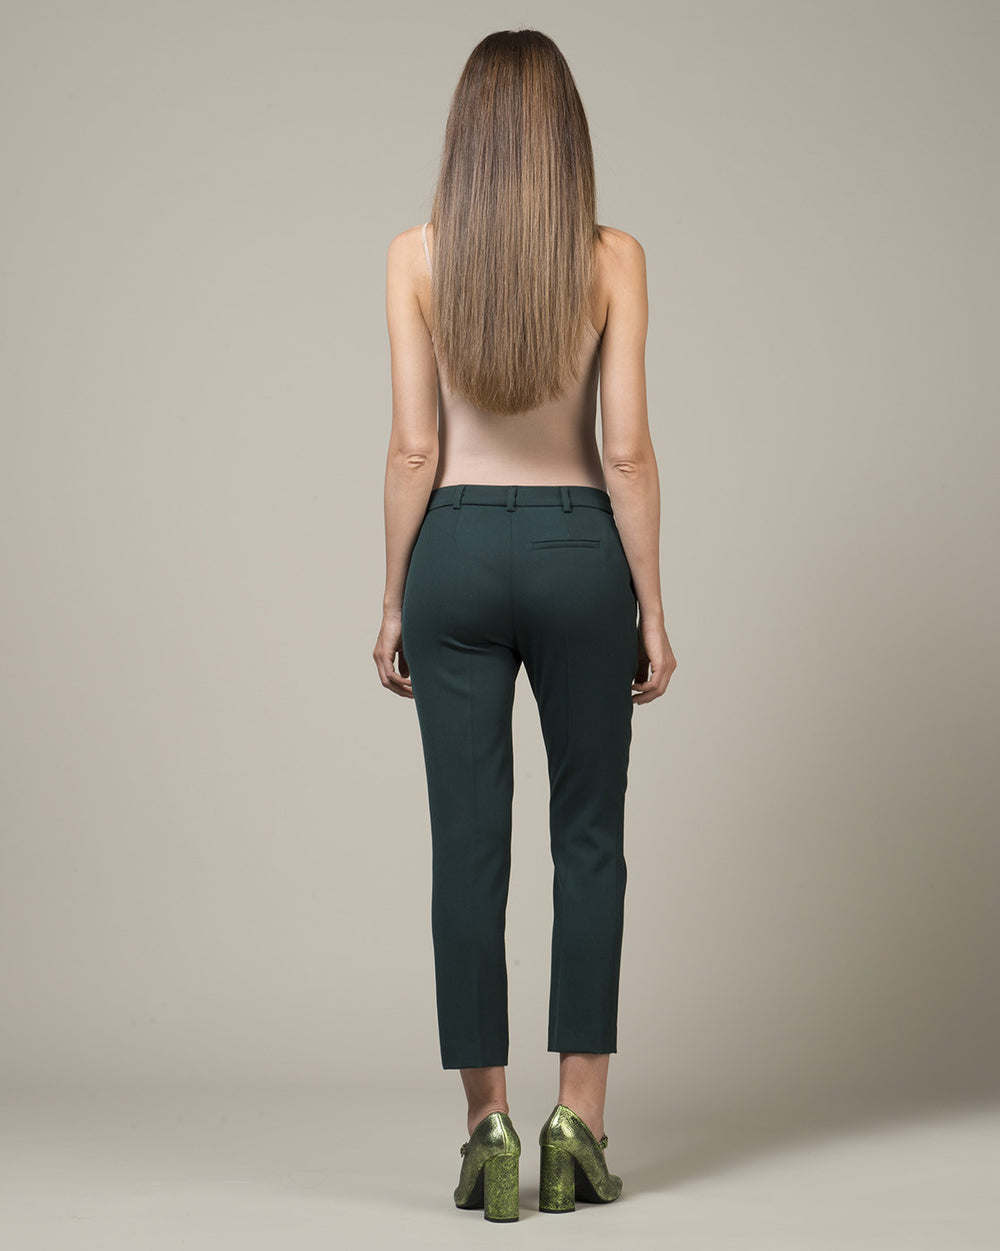 Green Tapered Pants